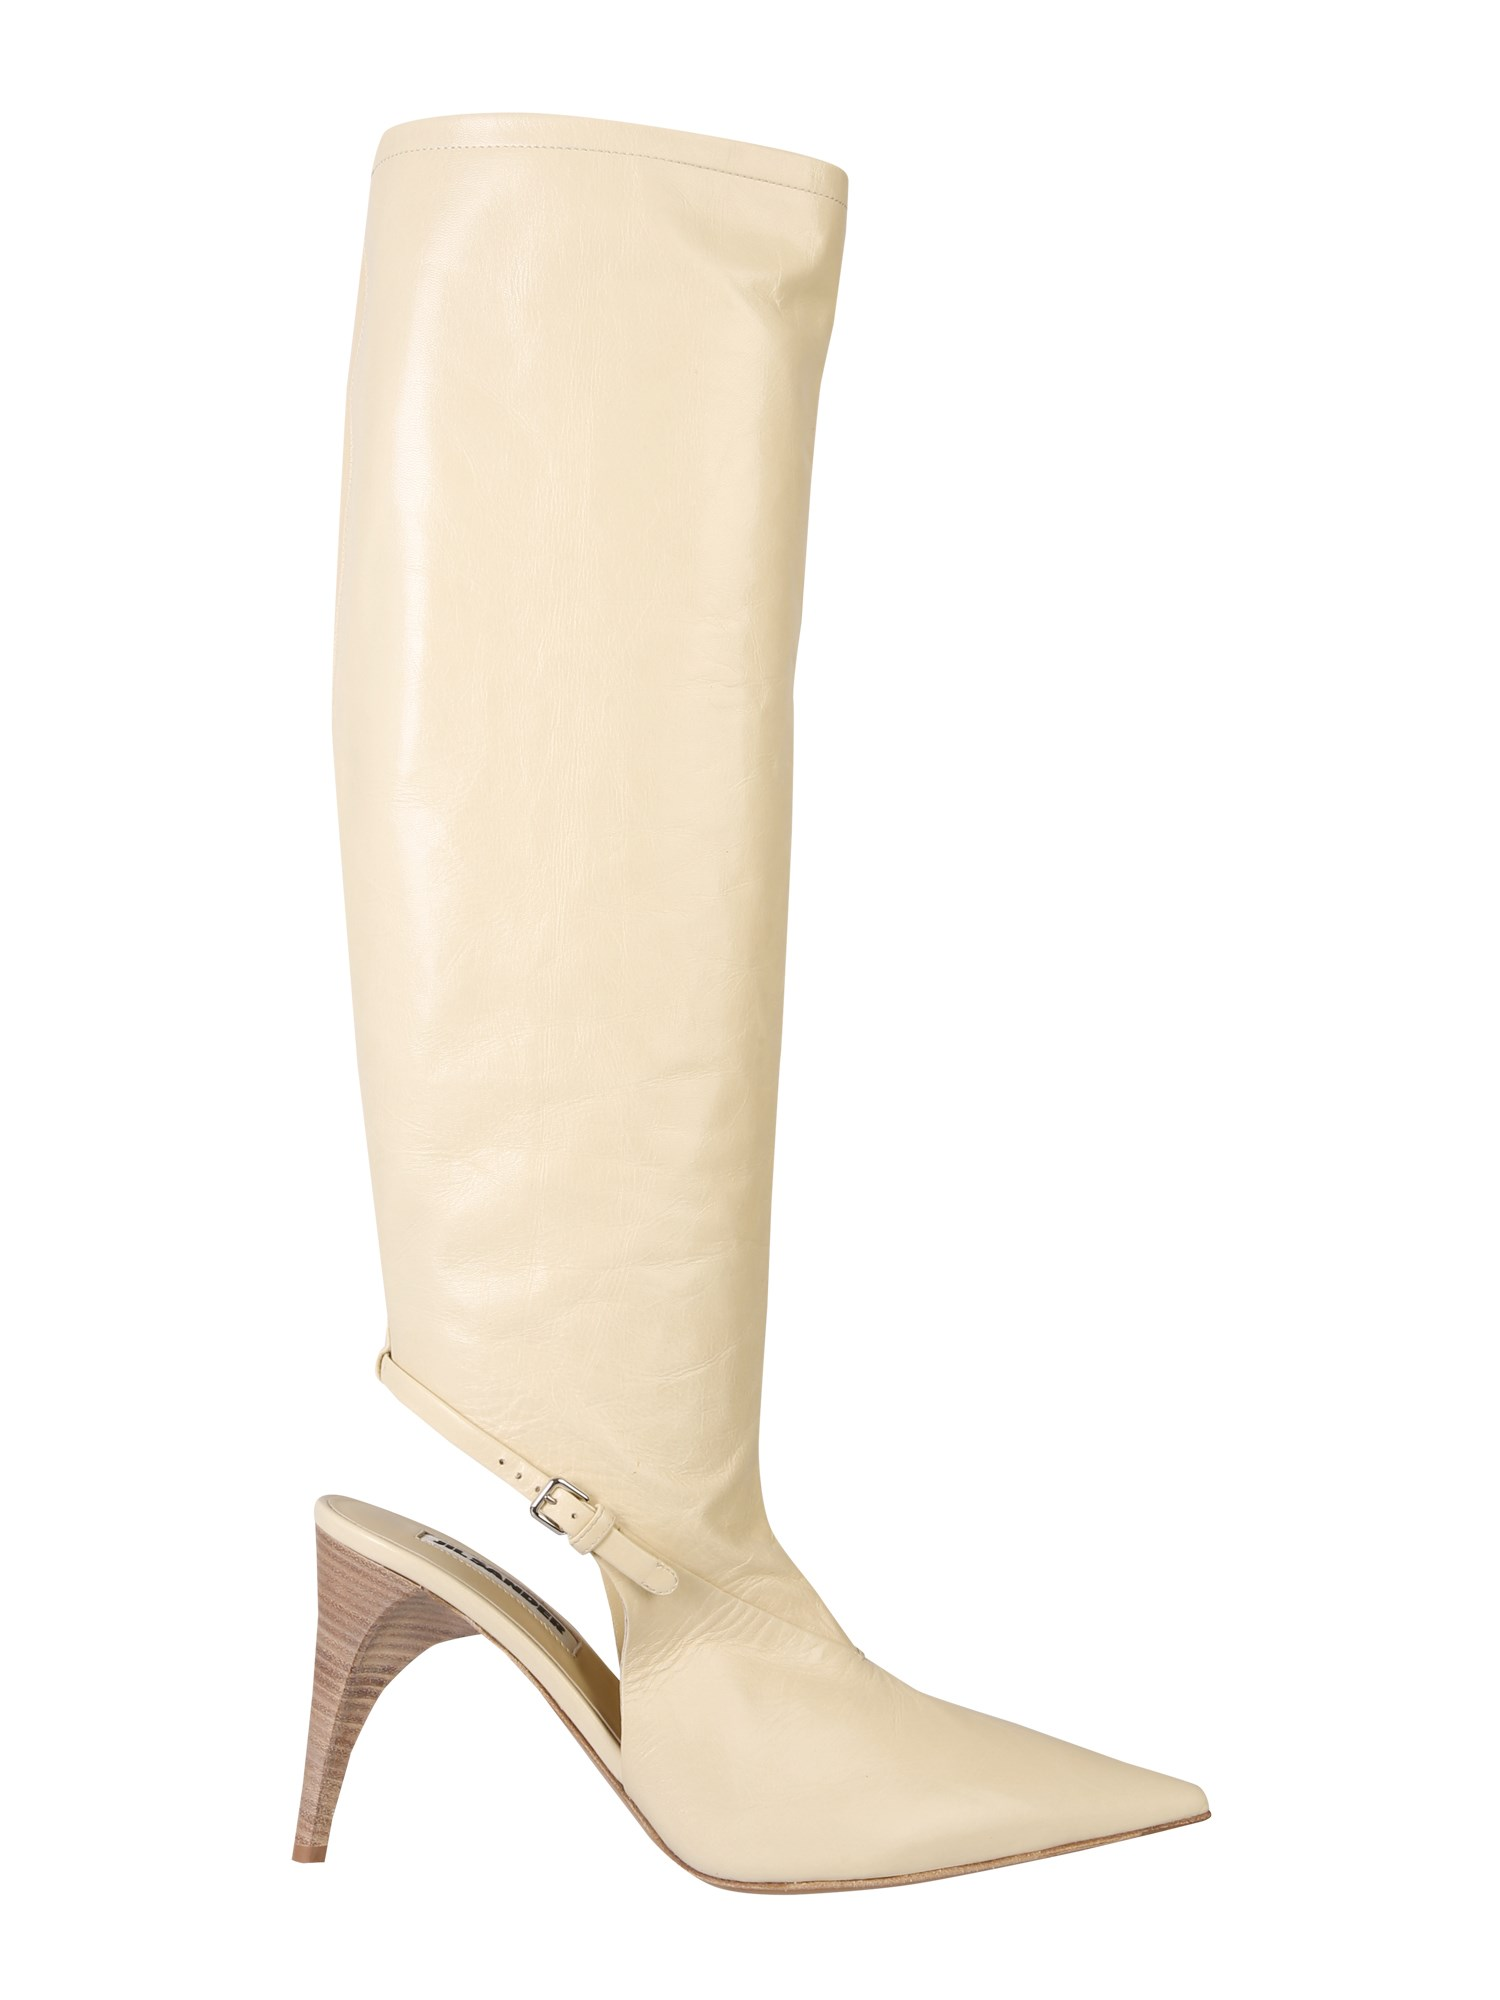 JIL SANDER HIGH SLING BACK BOOTS